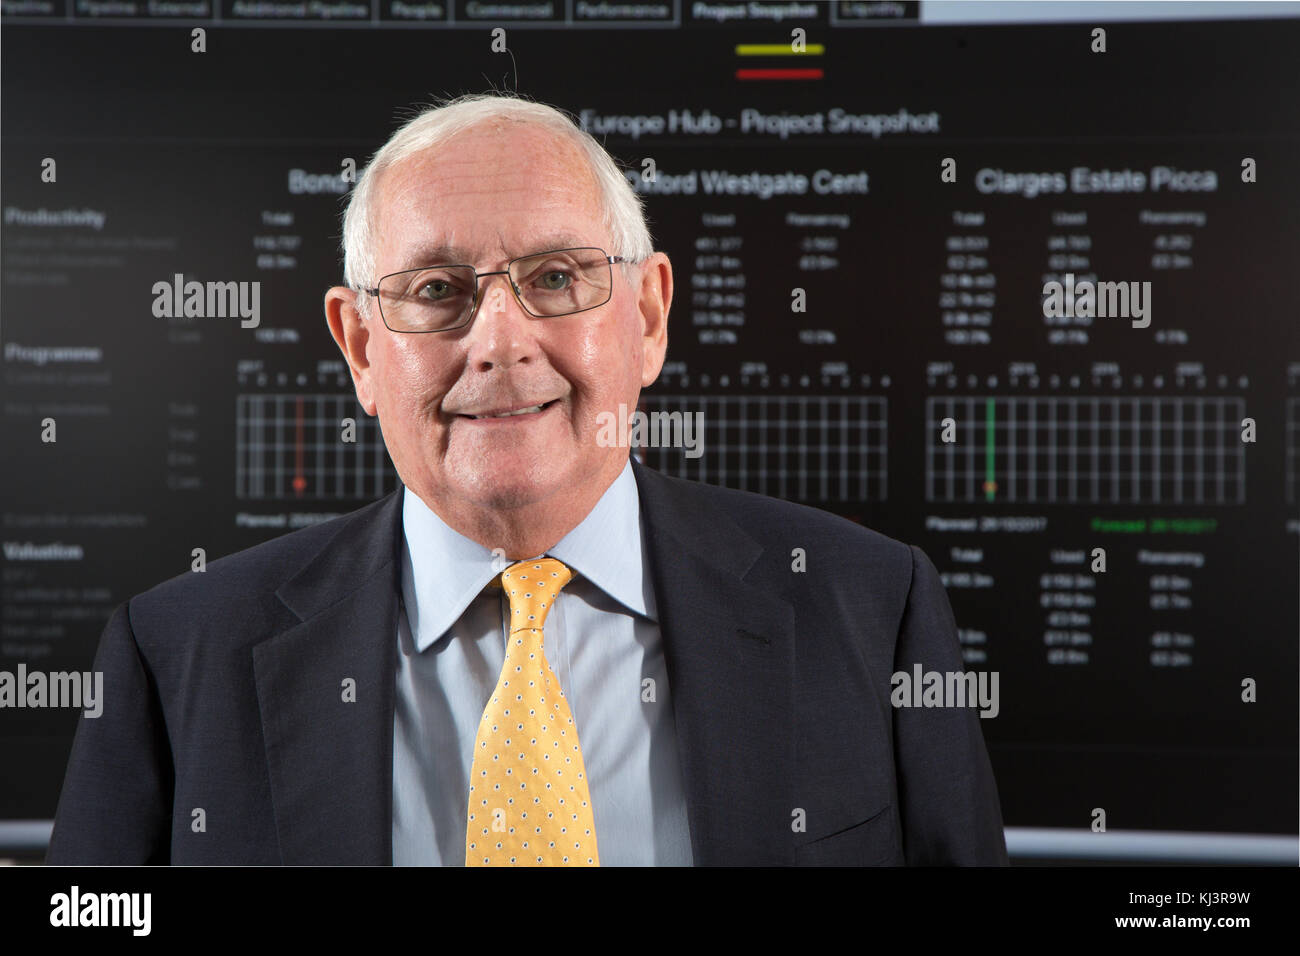 Ray O'Rourke, Chief Executive of construction company Laing O'Rourke. Photographed in front of data projected from Stock Photo